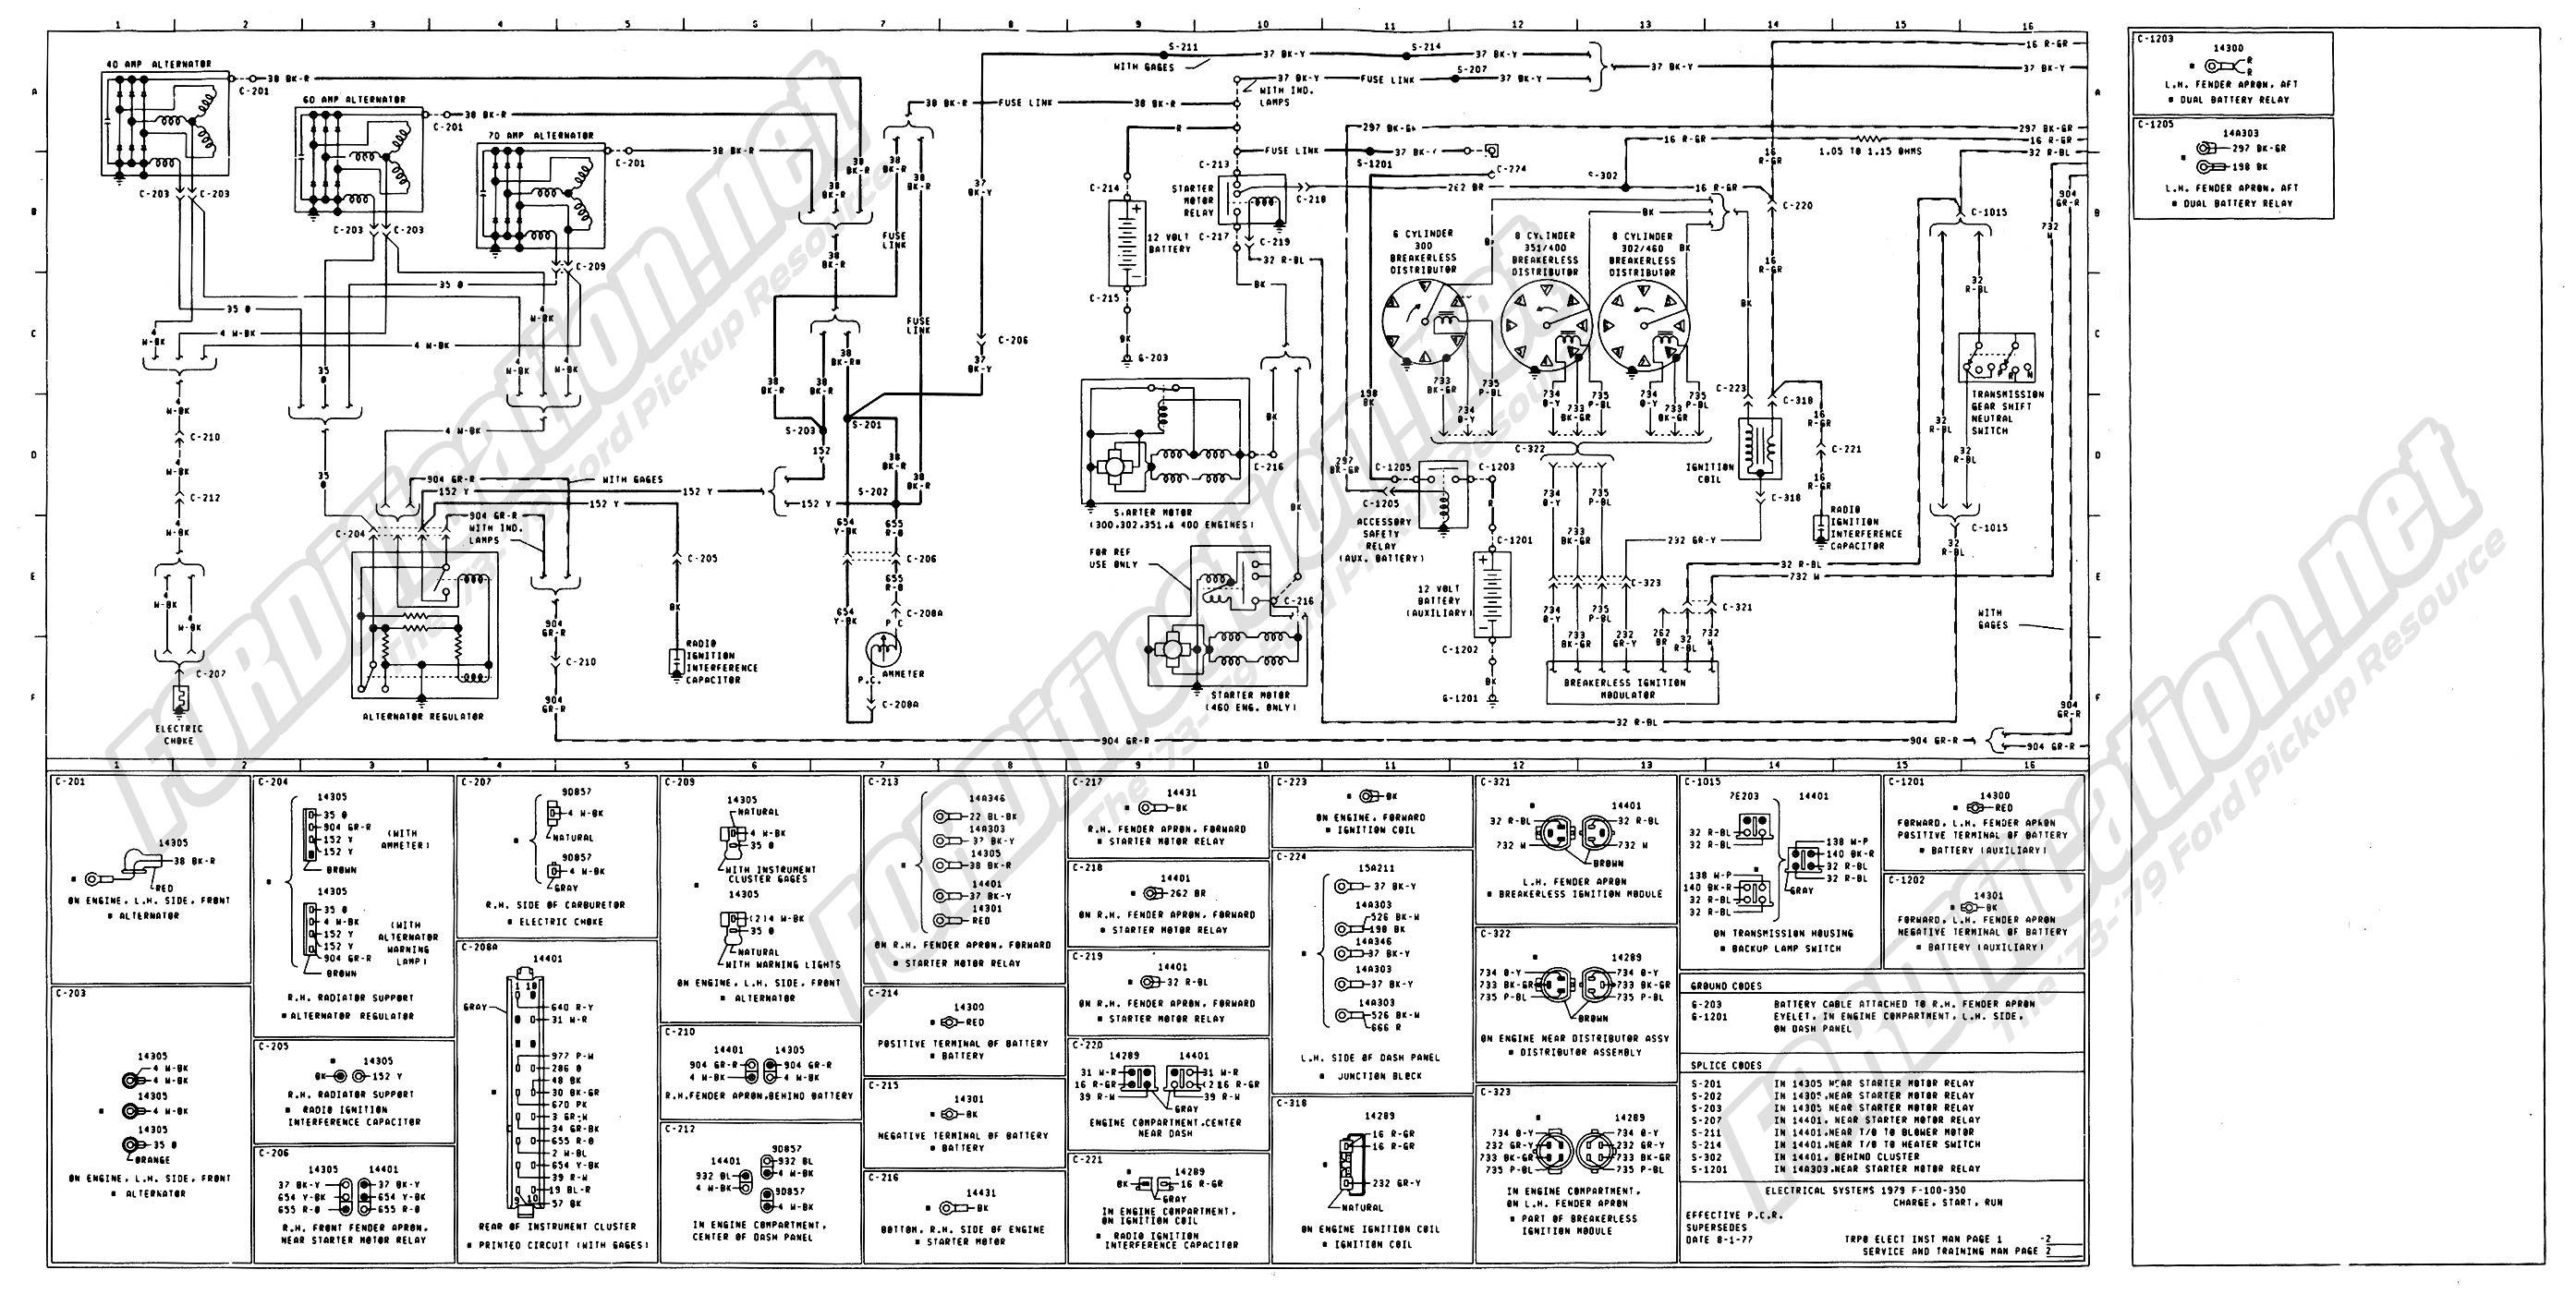 1988 Ford F250 Wiring Diagram from www.fordification.net